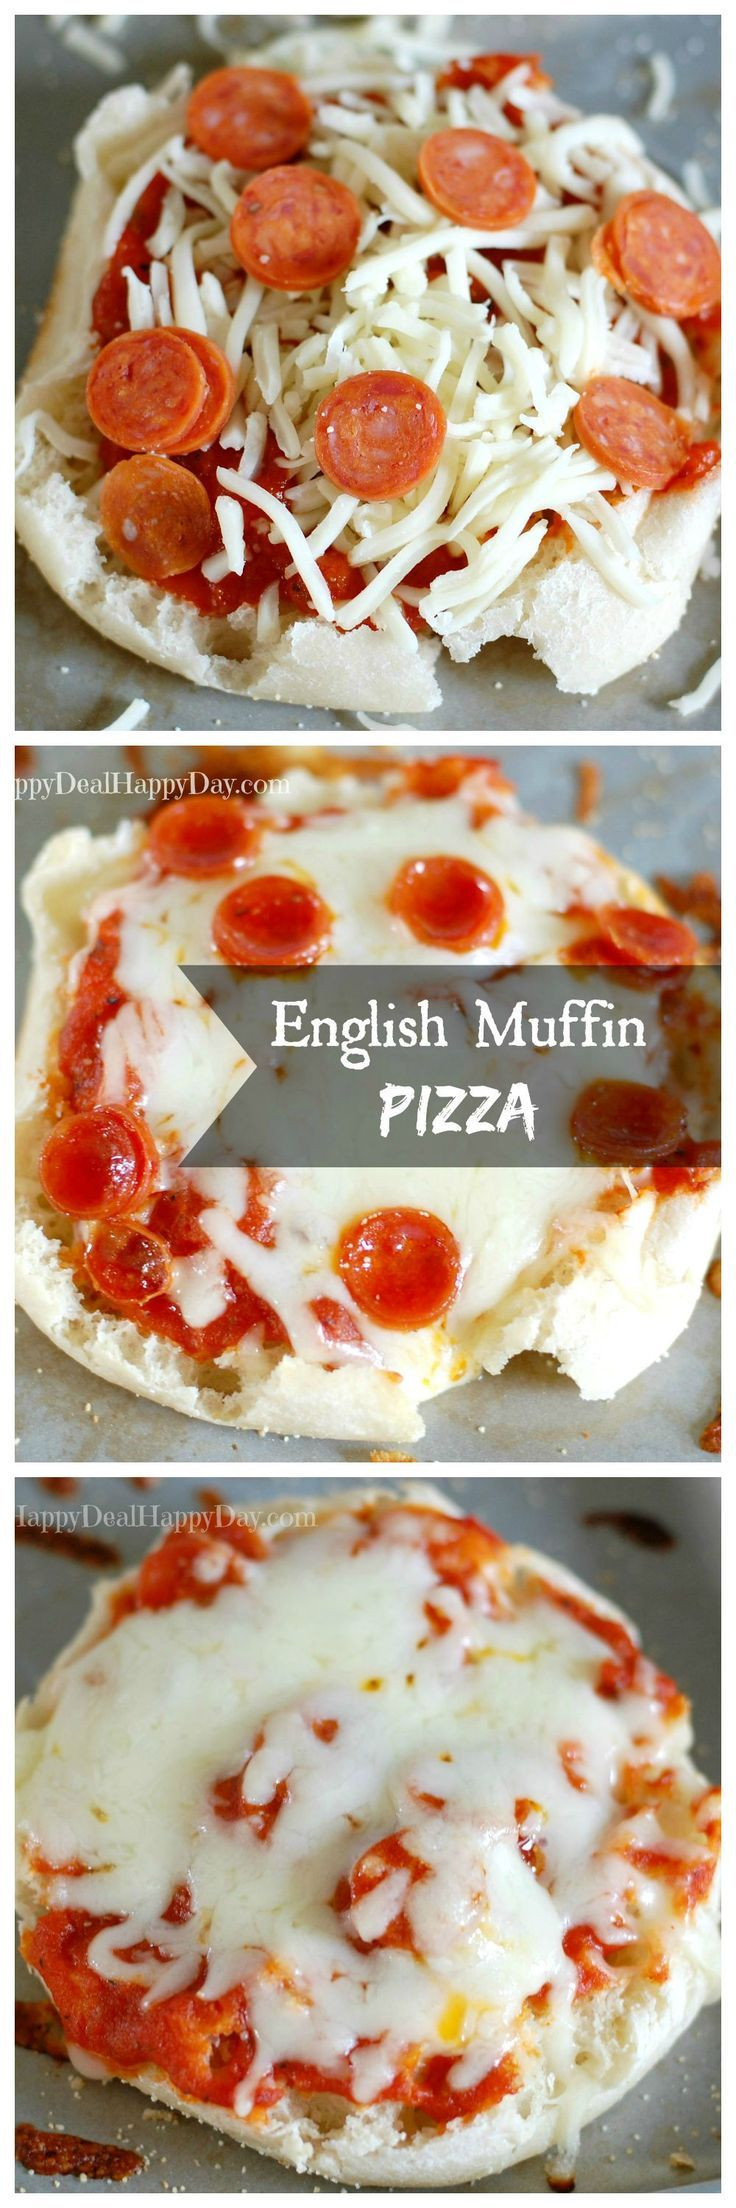 English muffin pizza - everyone's favorite when the kiddos want to help make dinner!!       happydealhappyday.com